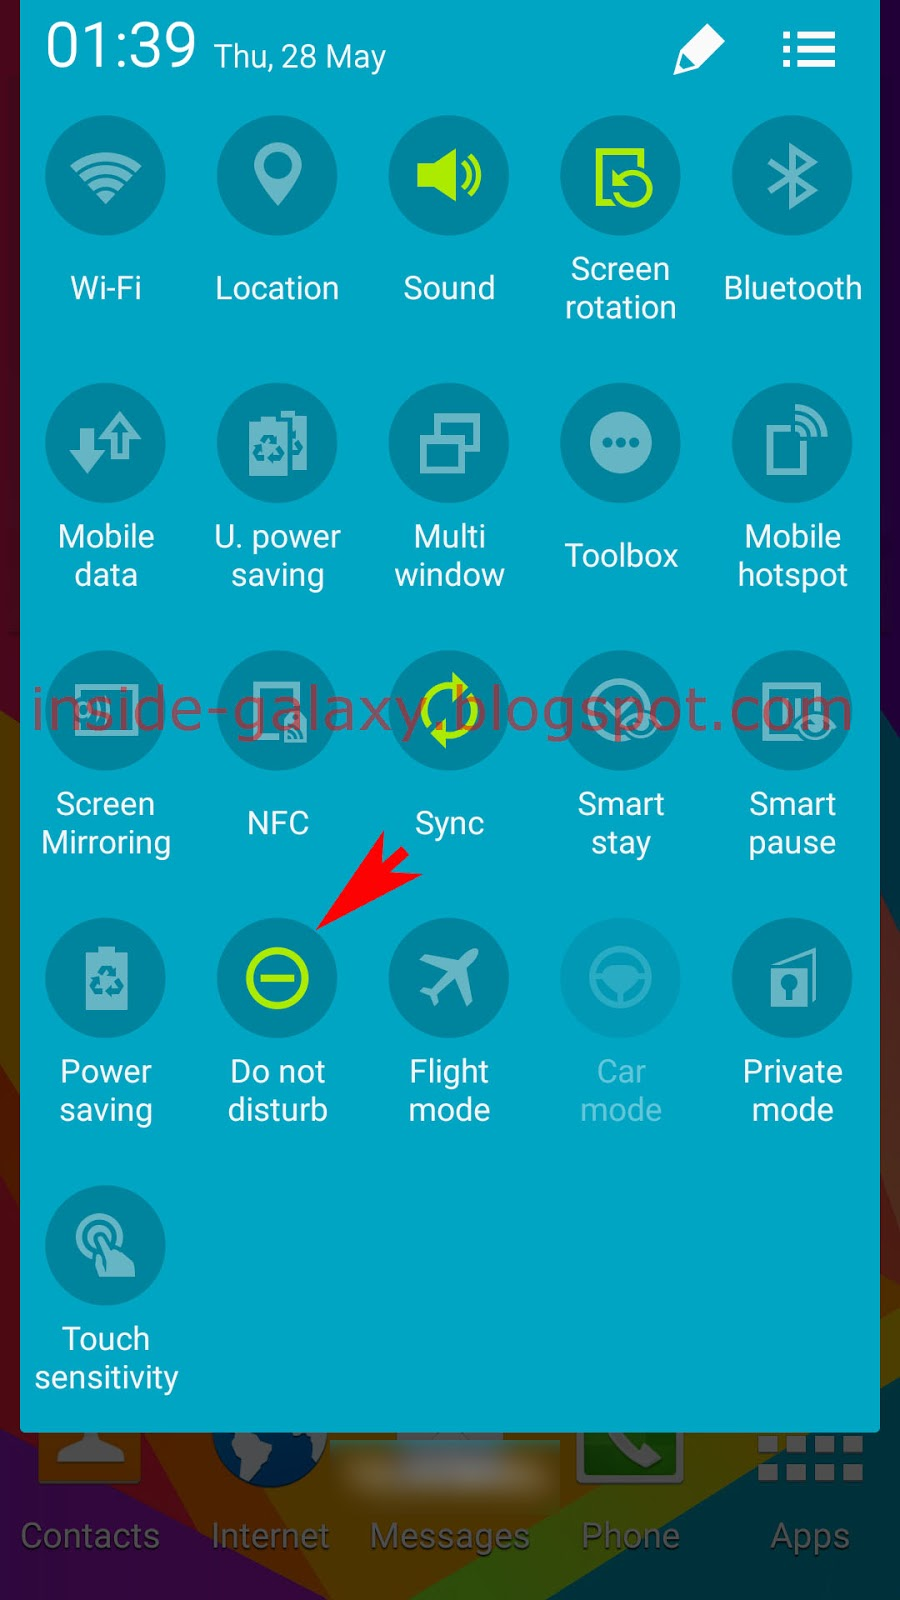 Samsung Galaxy S5: How to Manually Turn Off Do Not Disturb Feature